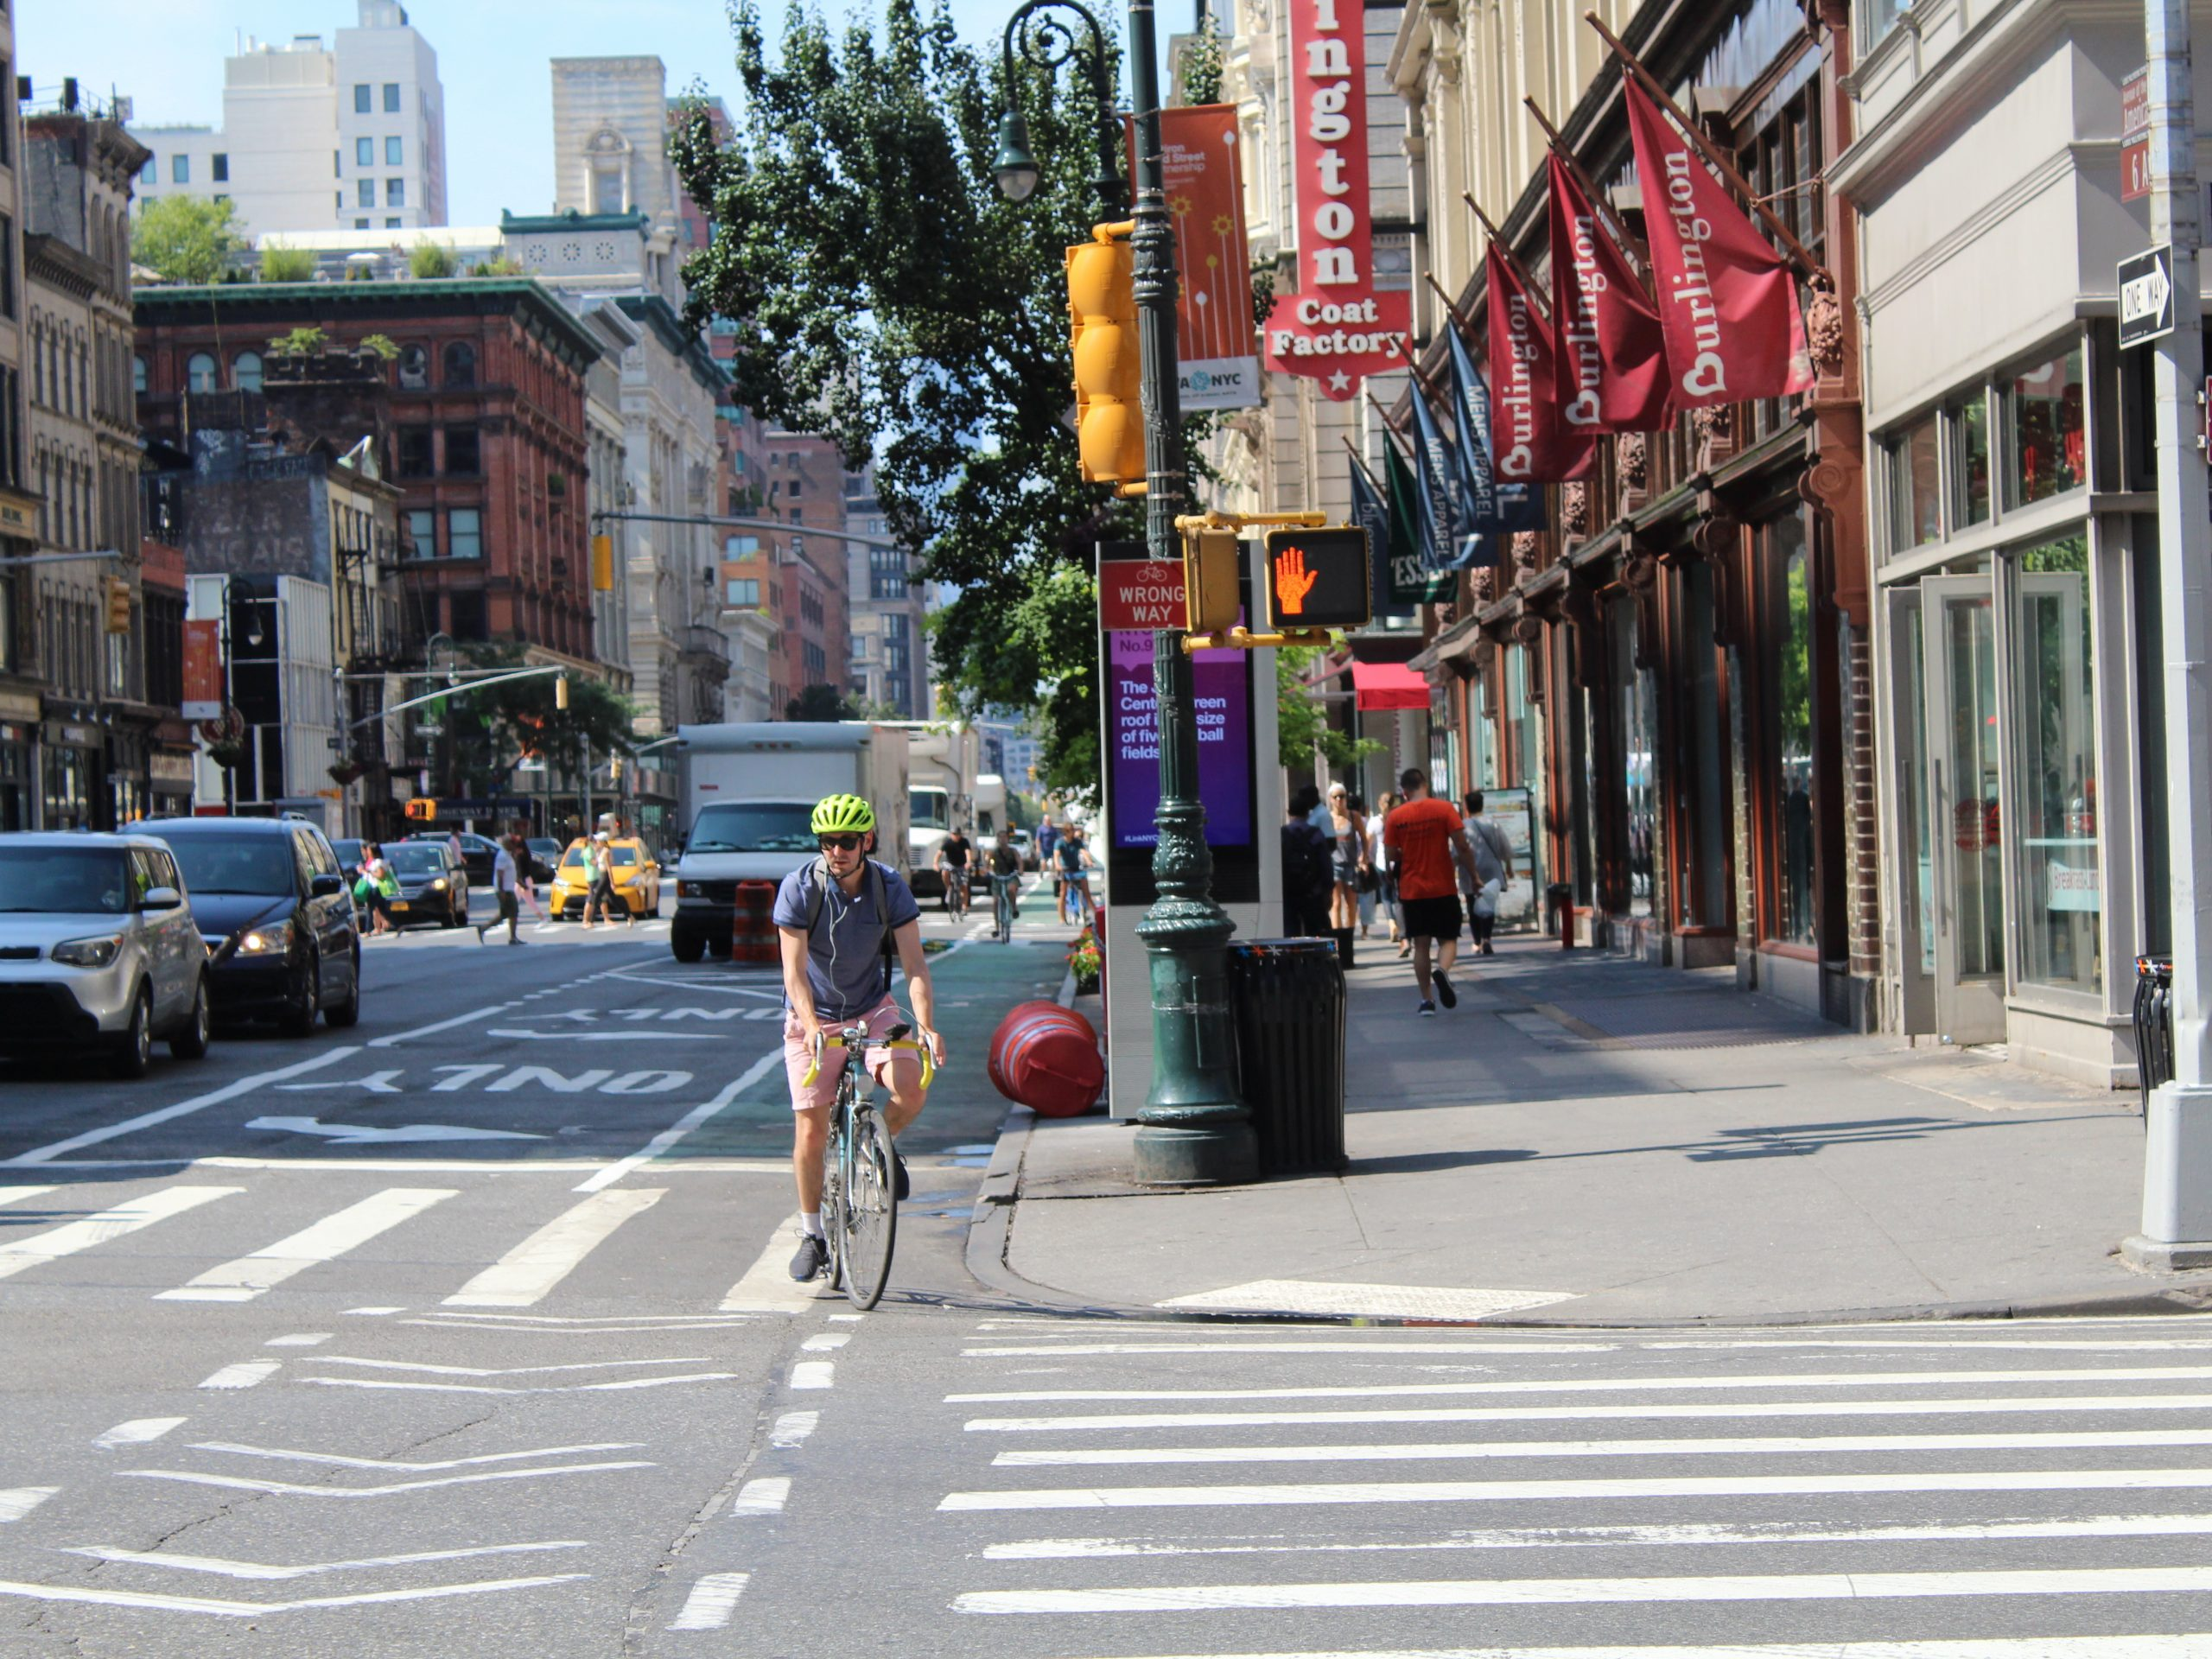 New York City has more than 6,000 miles of streets. Fewer than one in five has a bike lane.